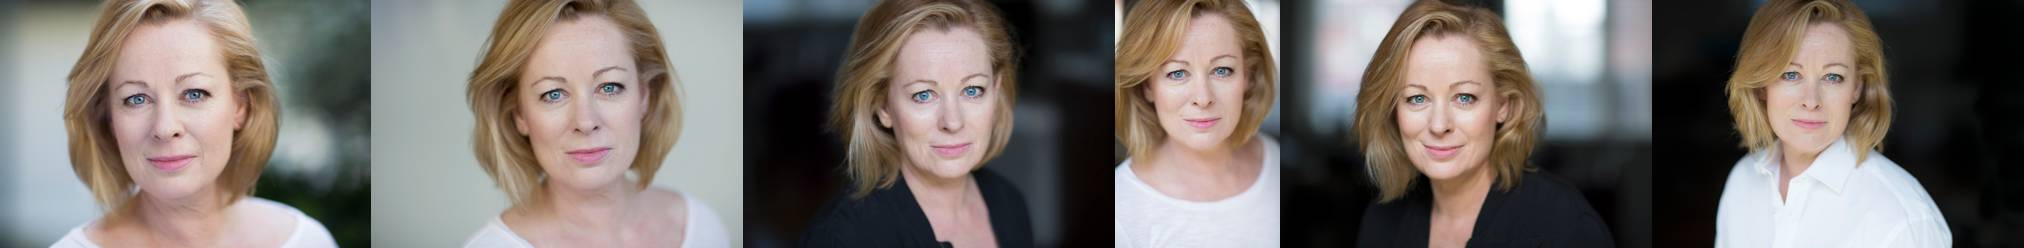 emma bullivant photography actors headshots london corporate portraits headshoteb0790